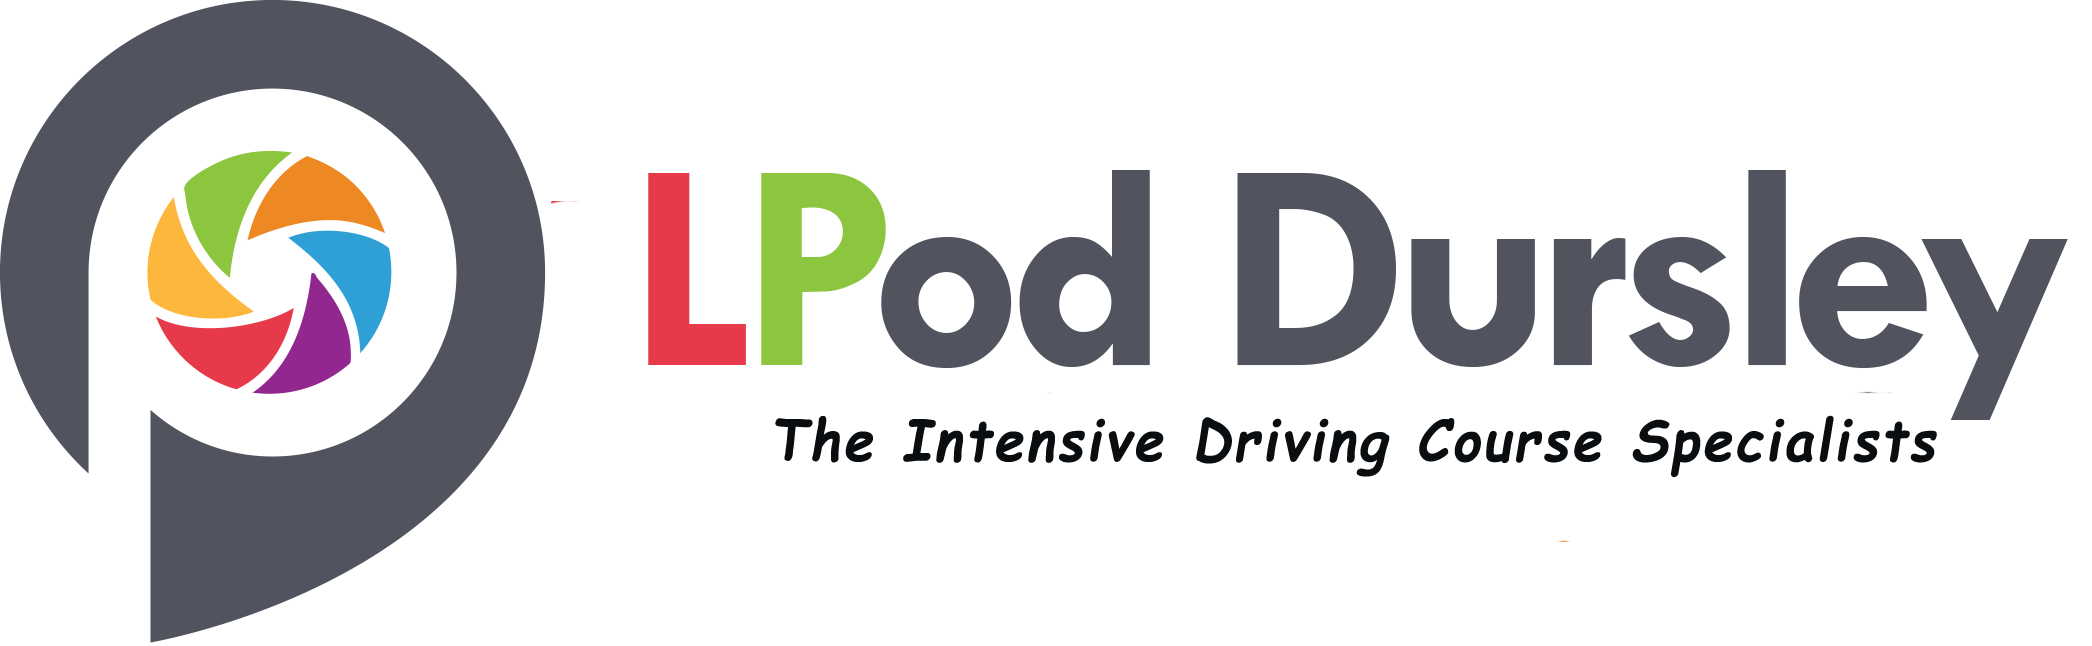 Intensive driving courses Dursley